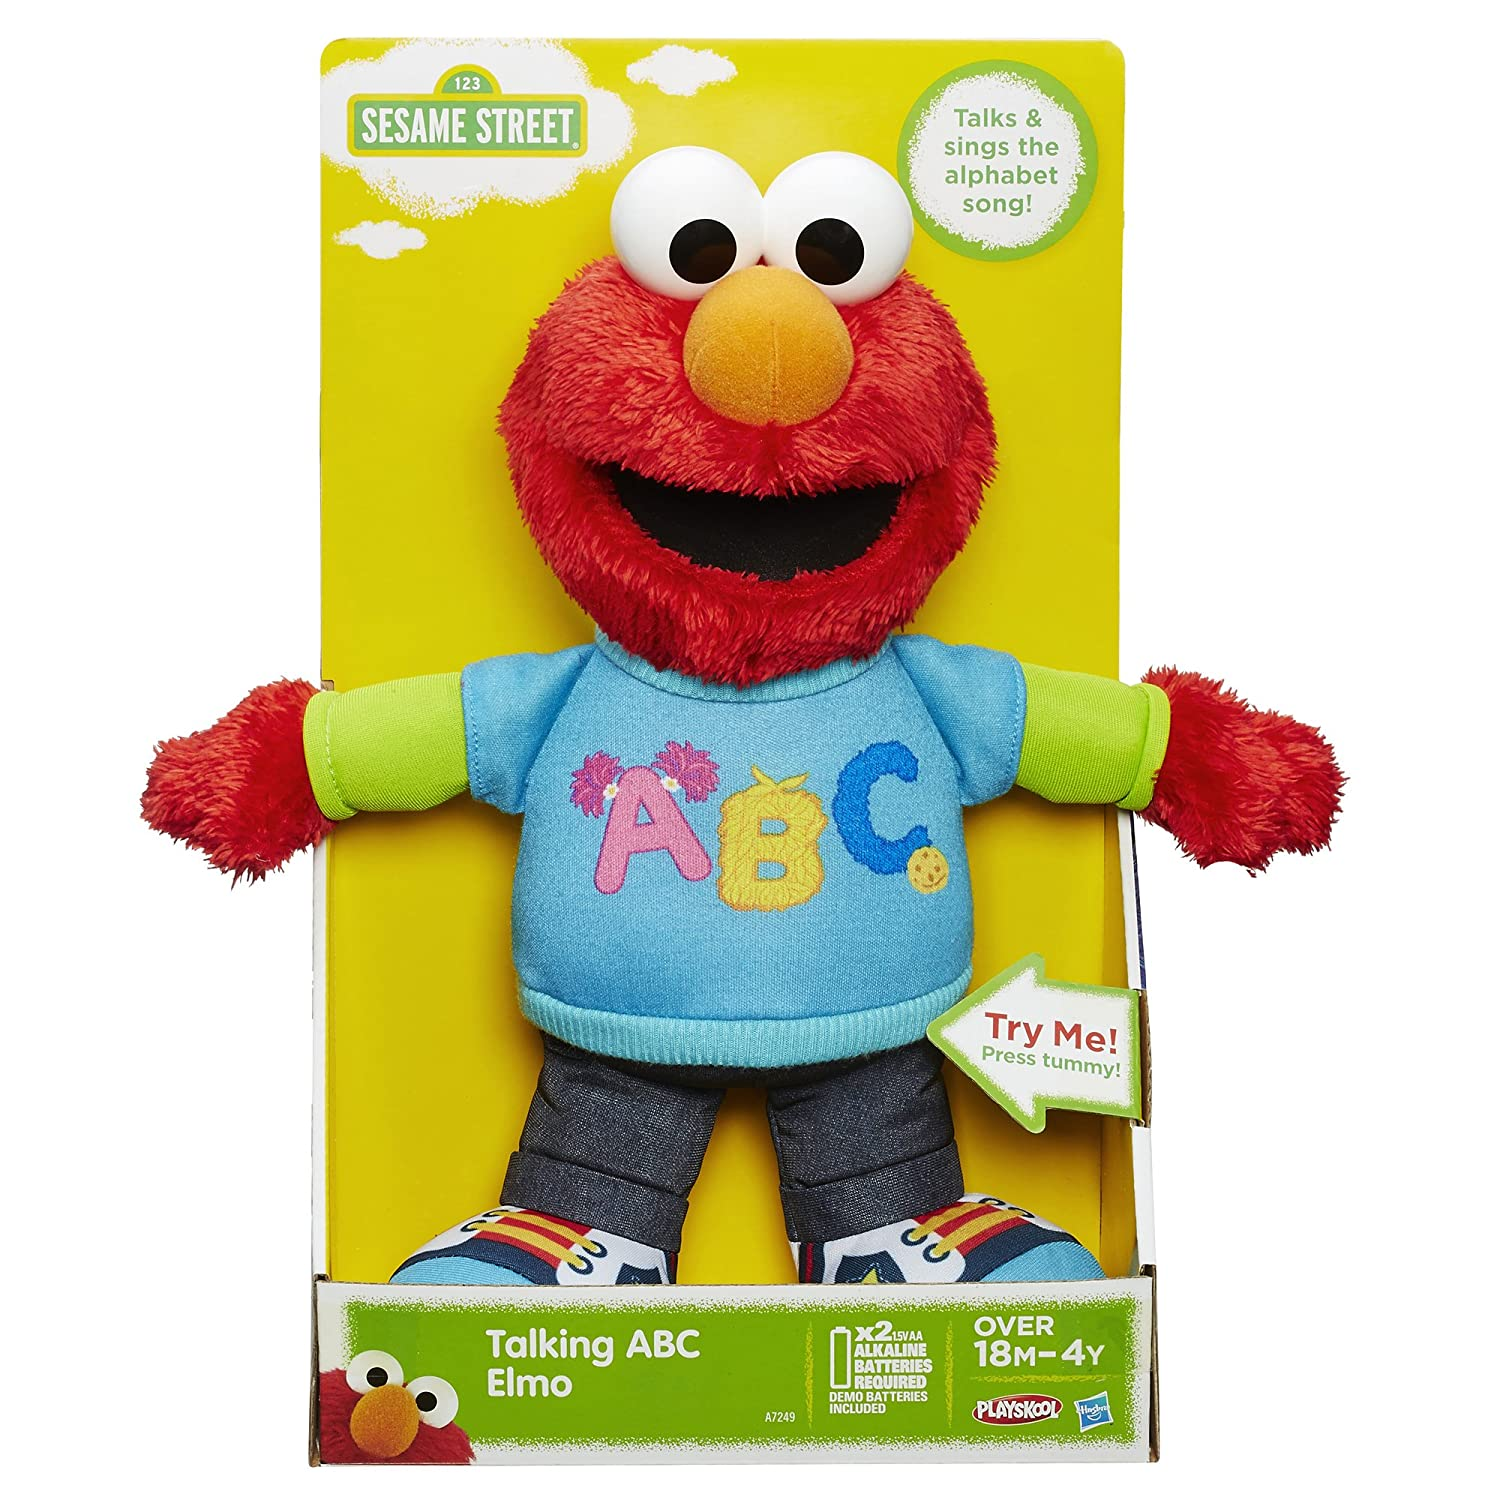 Sesame Street Toys : Sesame street talking abc elmo figure new free shipping